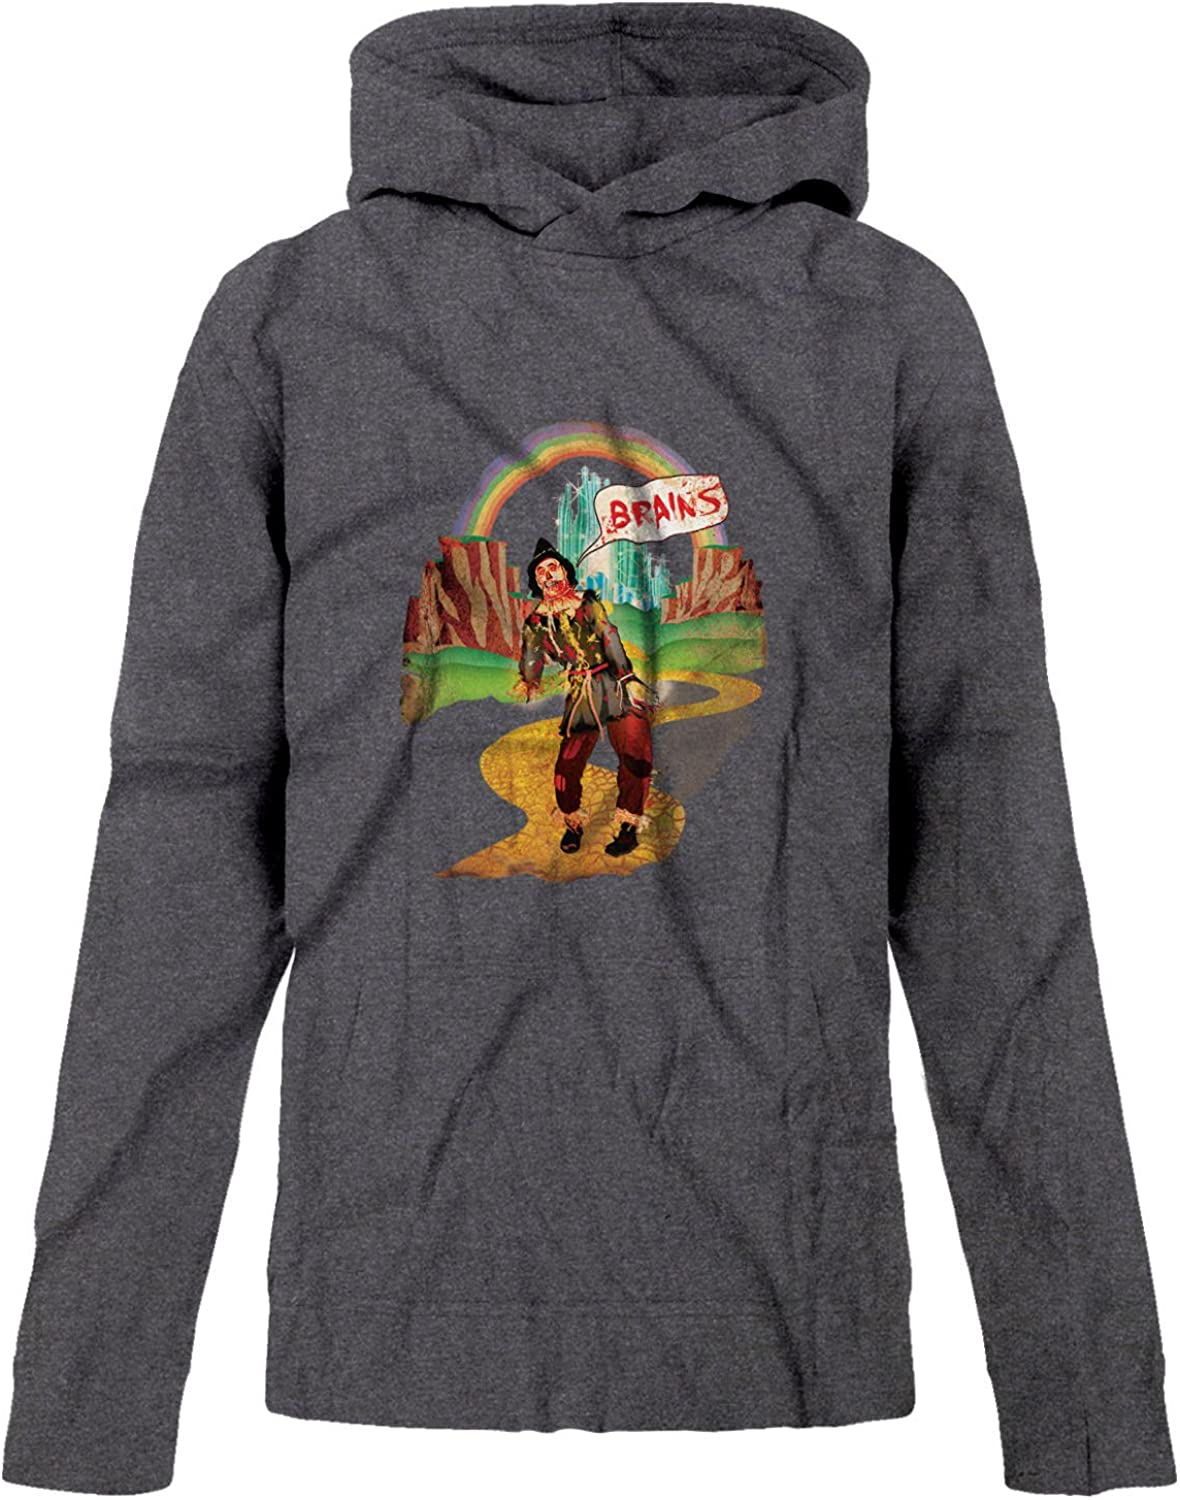 BSW Youth Boys Brains Scarecrow The Wizard of Oz Zombie Zip Hoodie